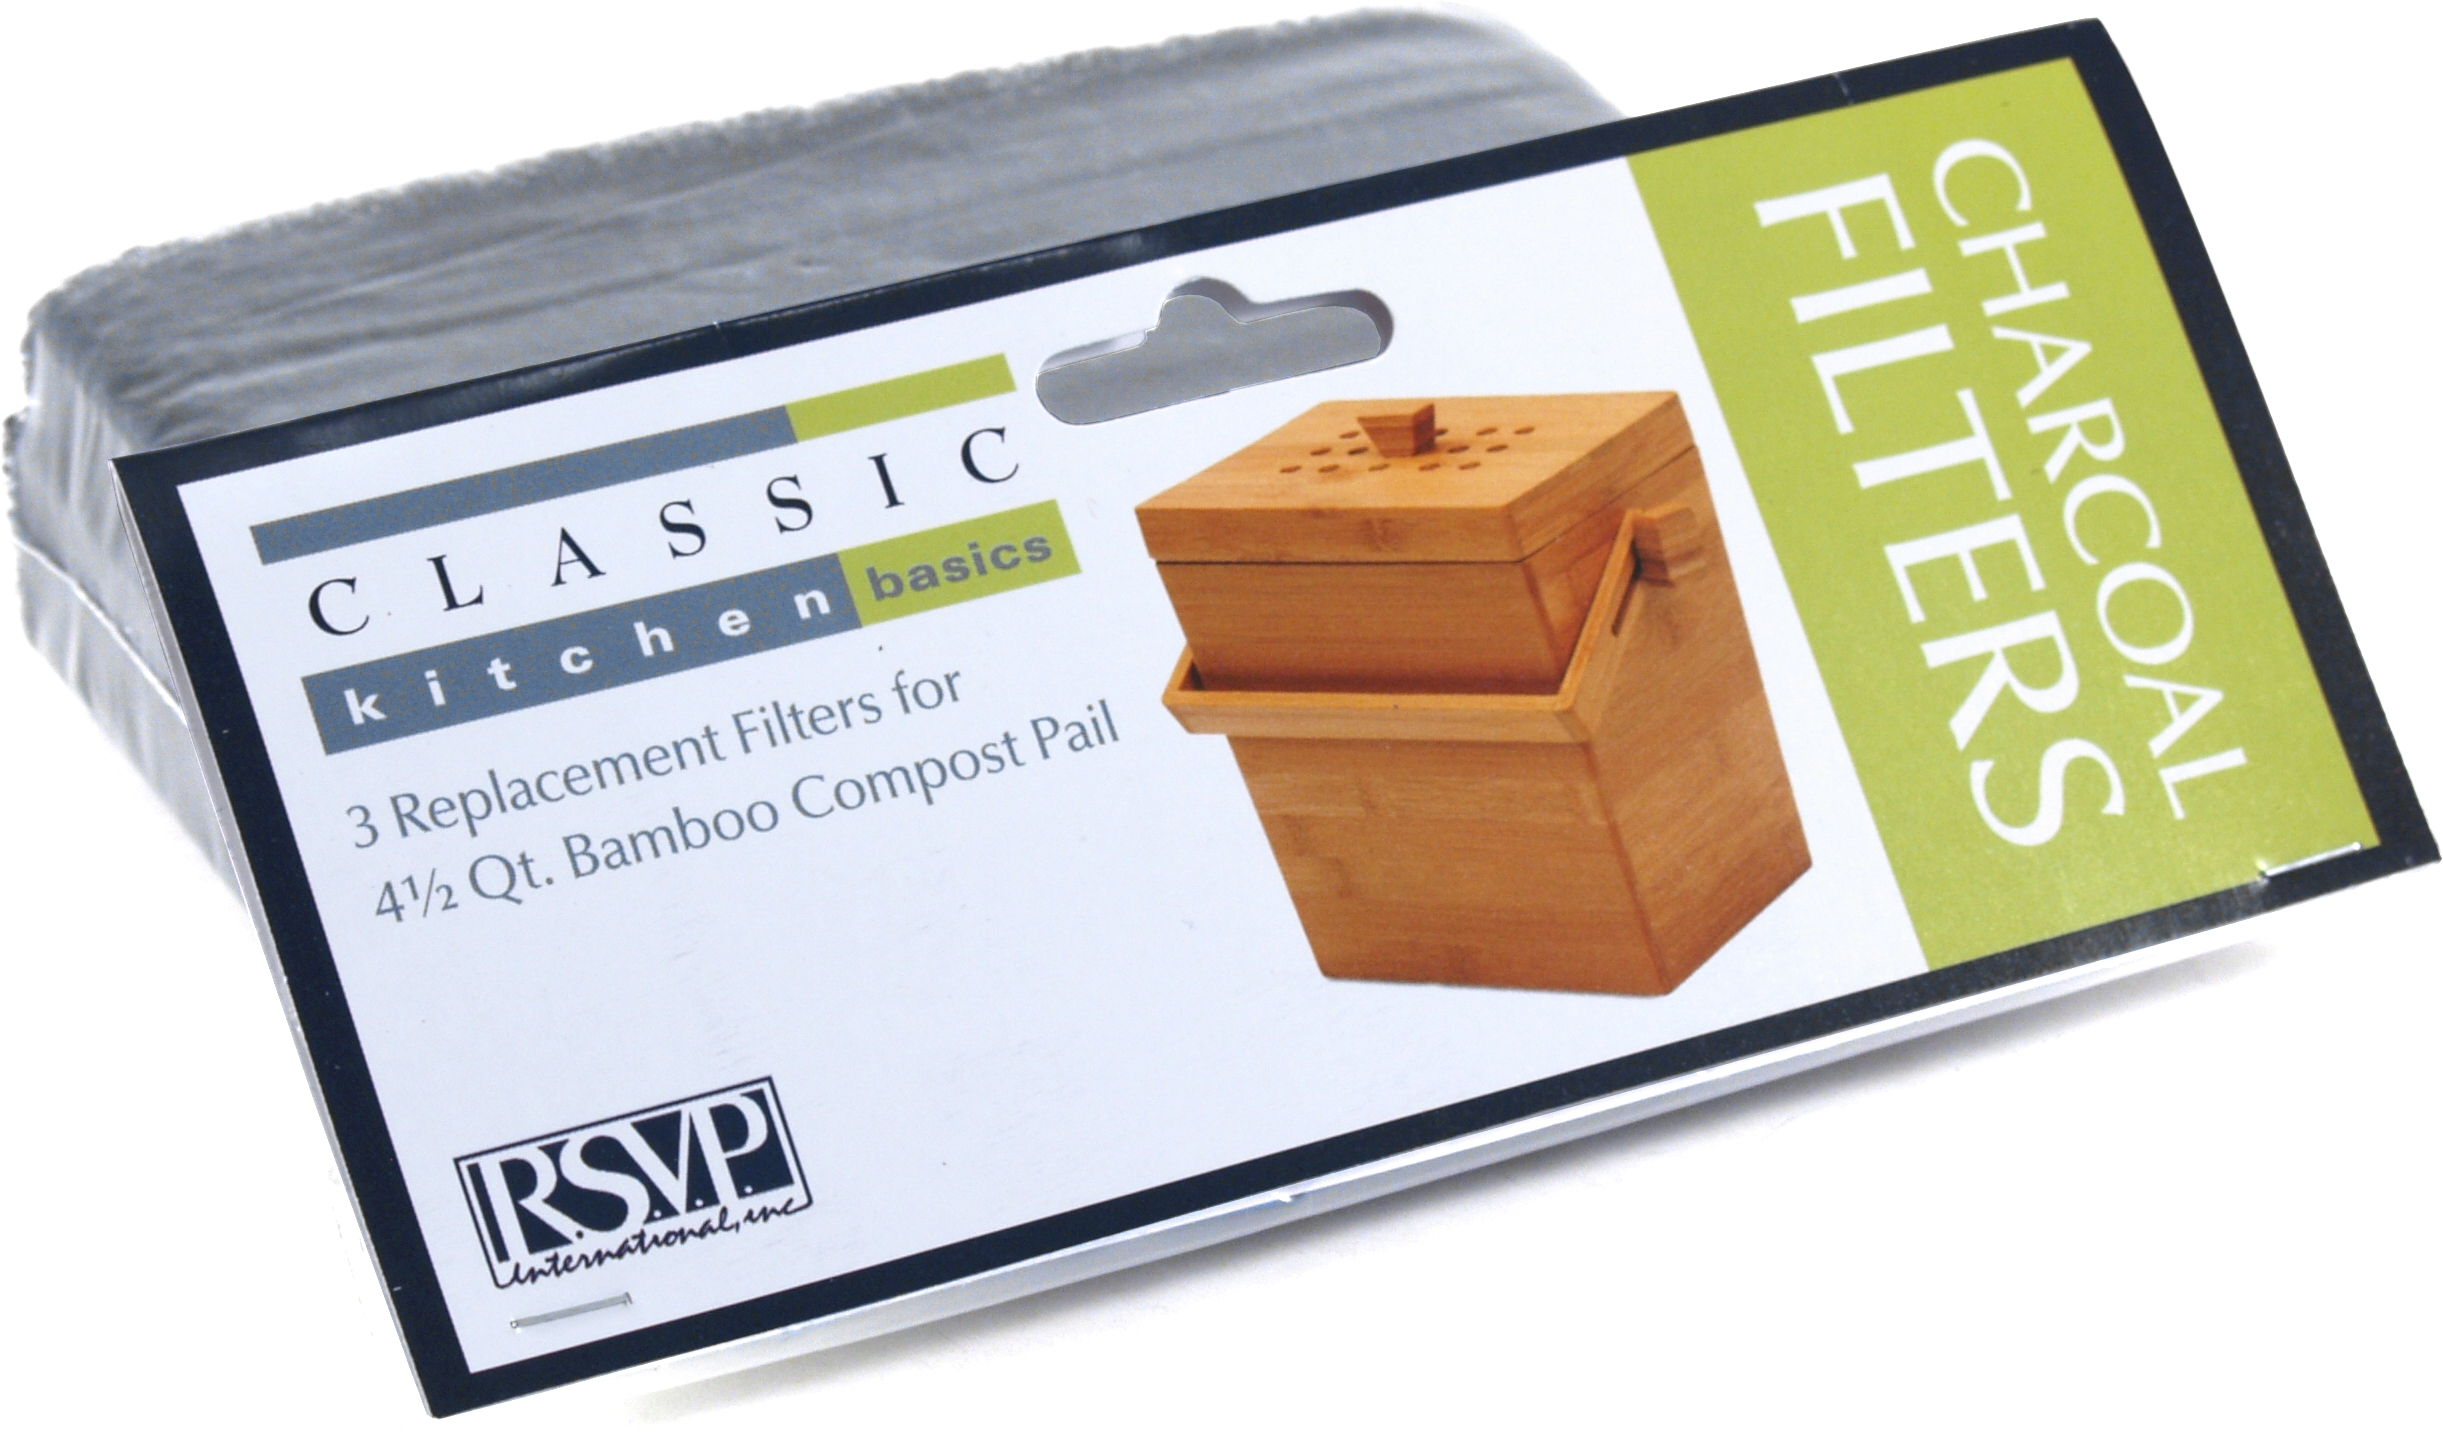 RSVP Replacement Charcoal Filters for 4.5 Quart Bamboo Compost Pail, Set of 3